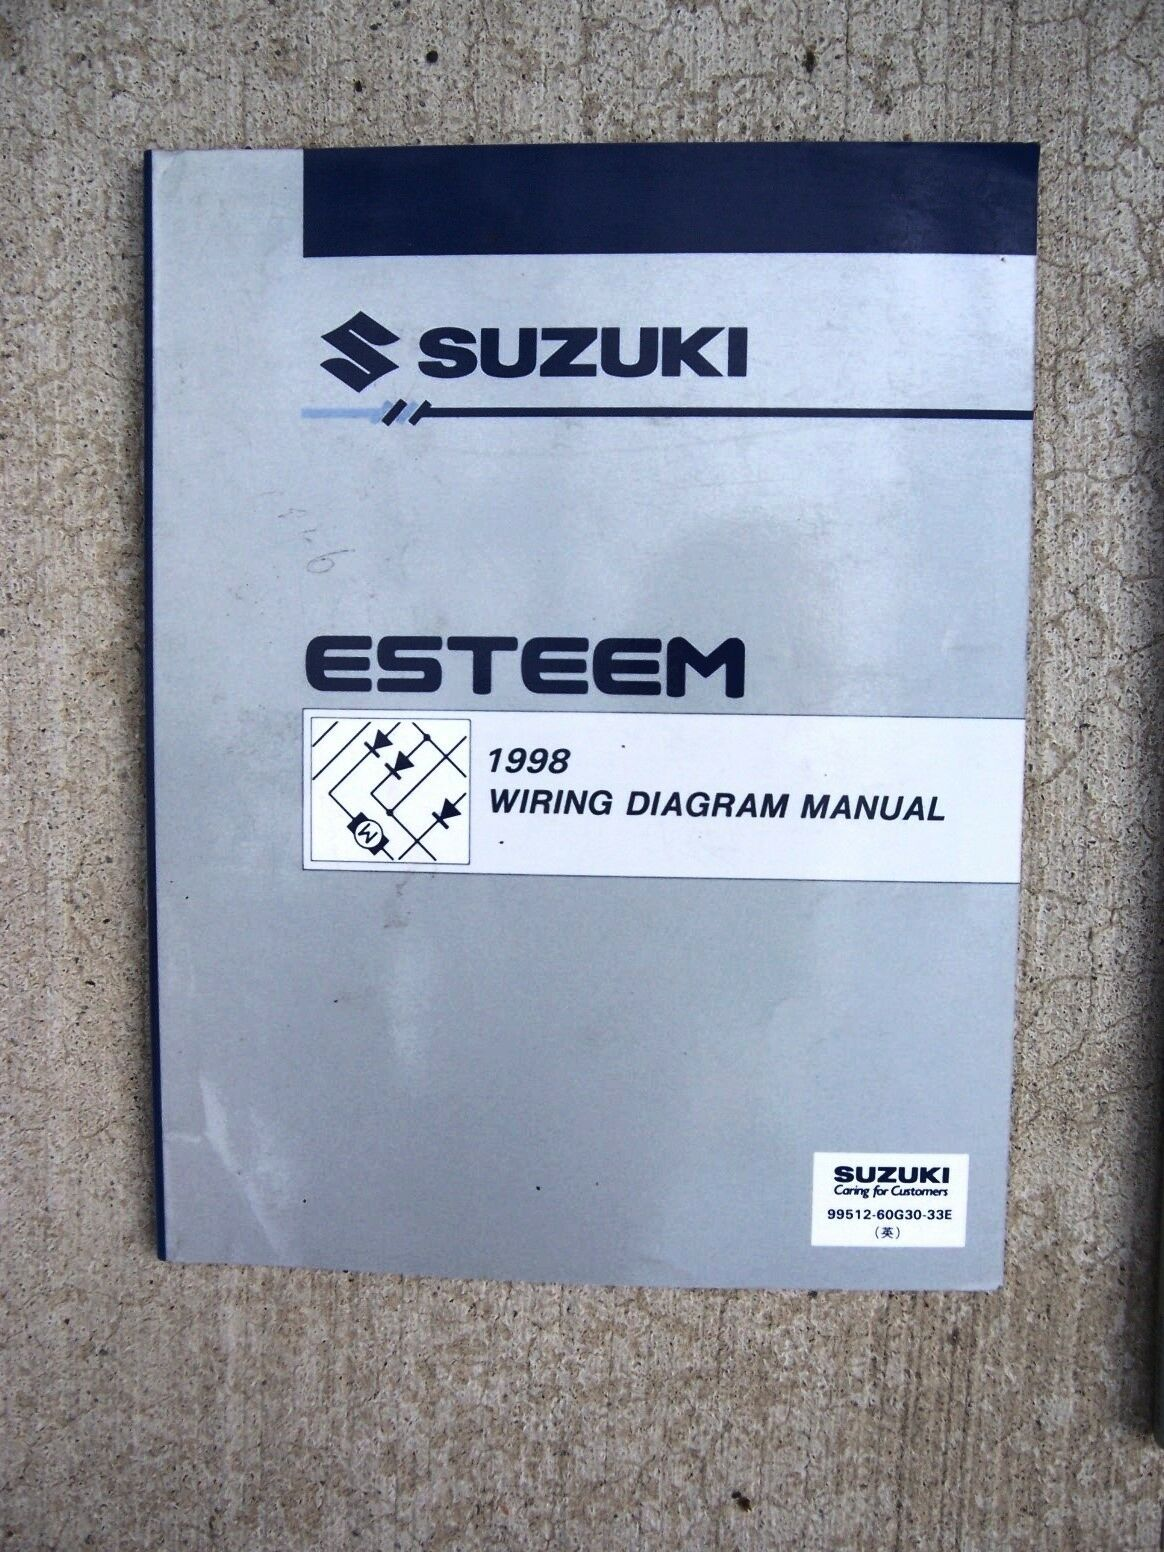 1998 Suzuki Esteem Wiring Diagrams Schematics Kawasaki Bayou 300 Diagram Luxury Terrific Intruder 0 Auto Manual Connectors Ground Rh Picclick Com Repair